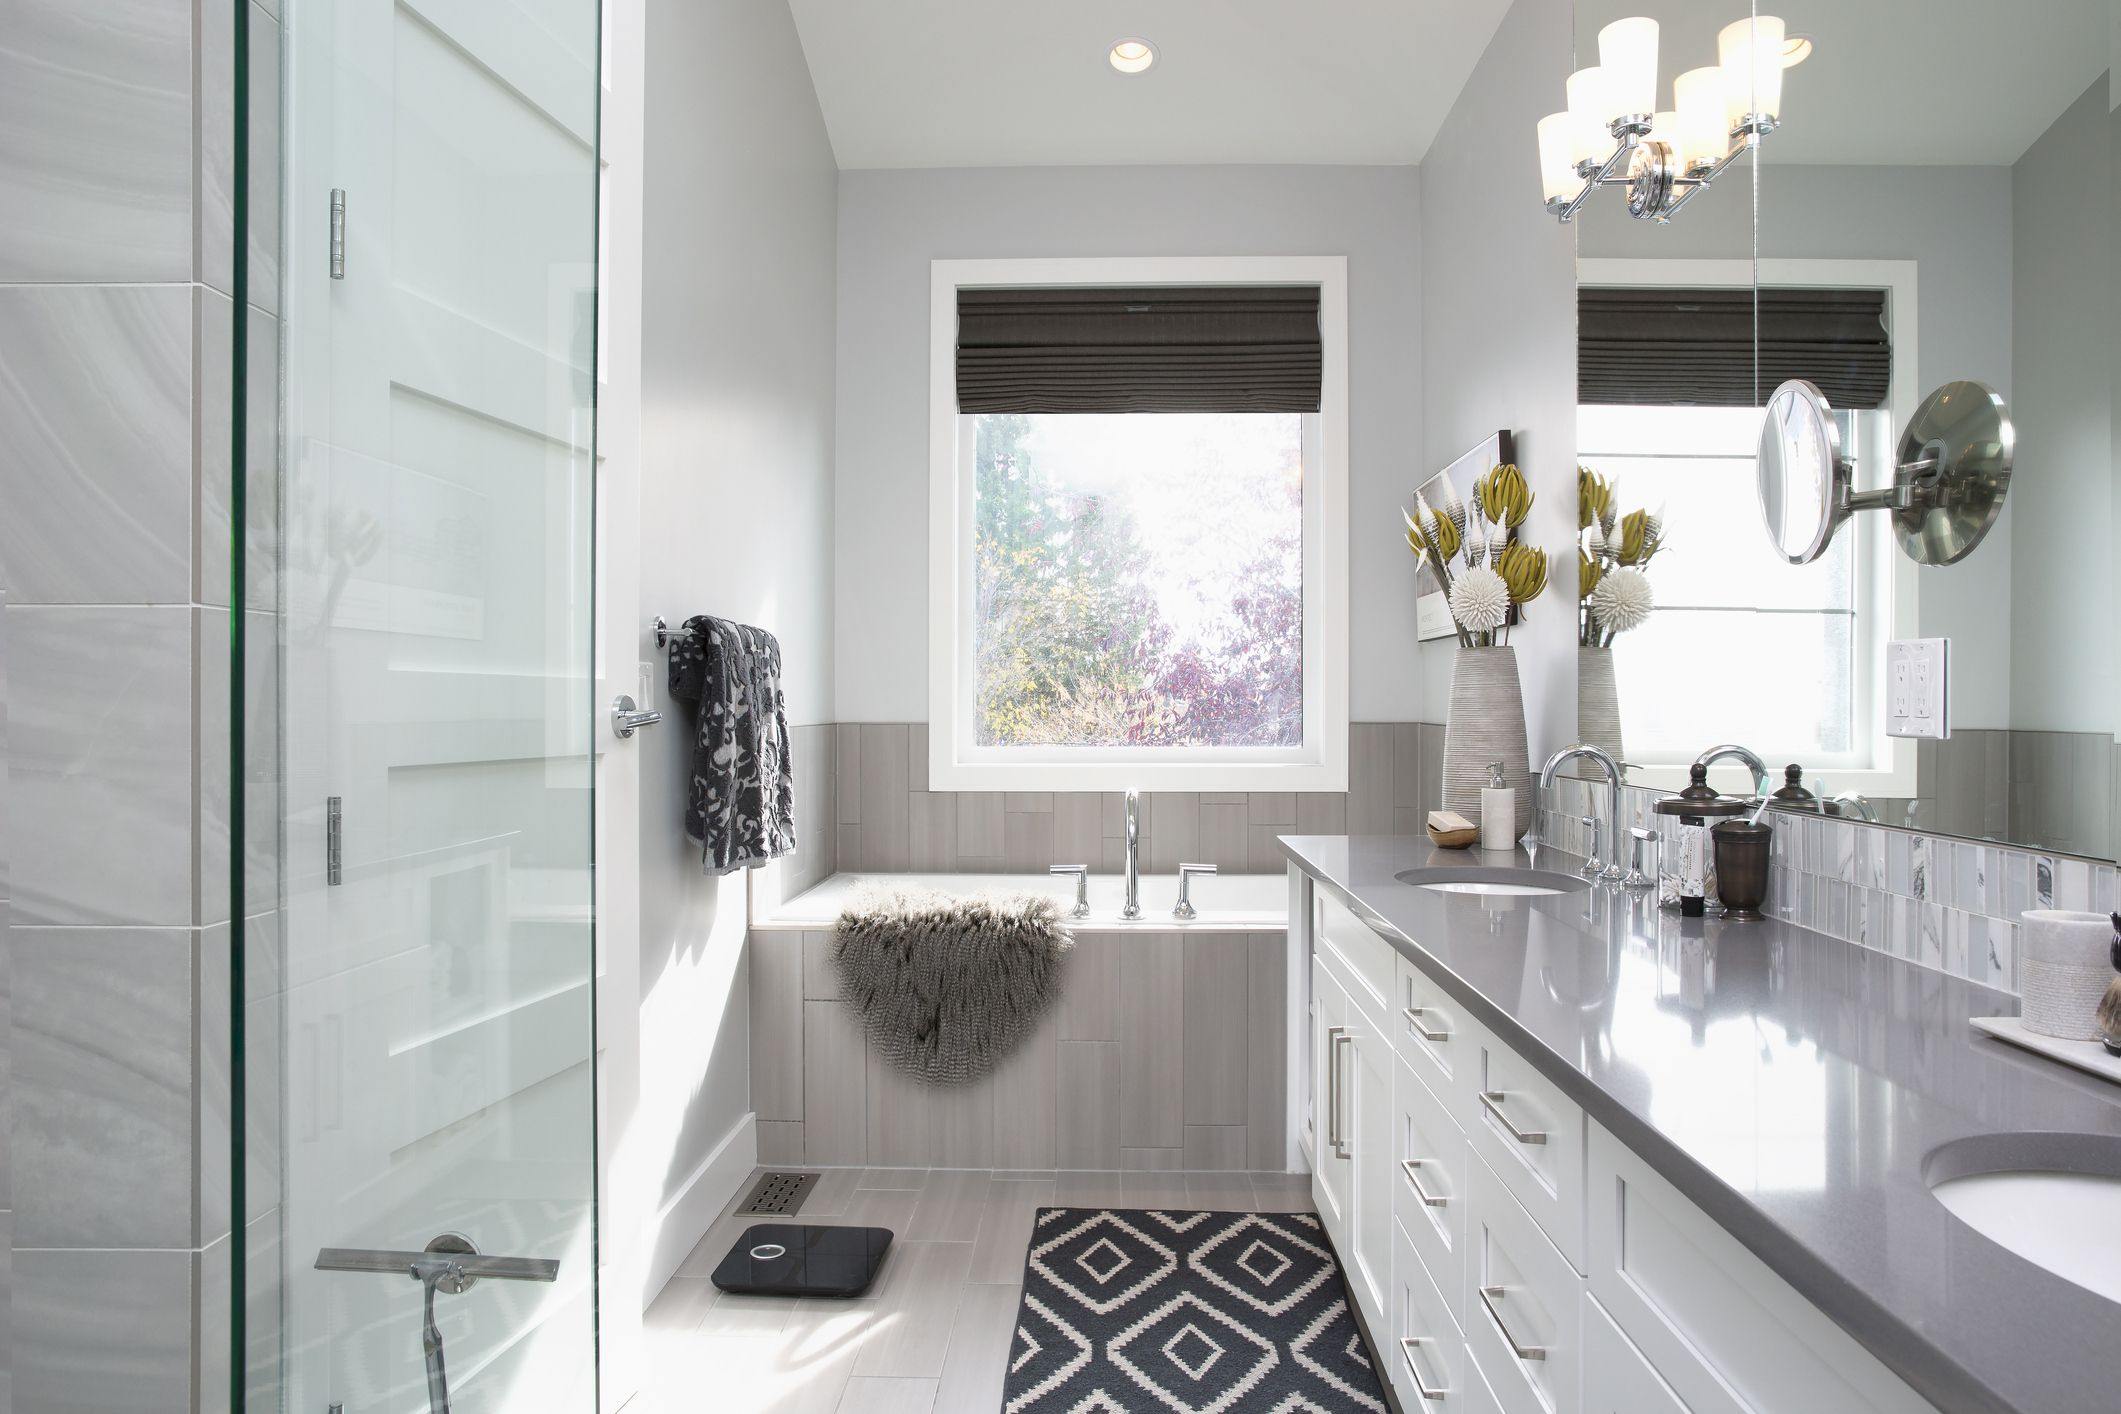 Bathroom features that add the most value to your property